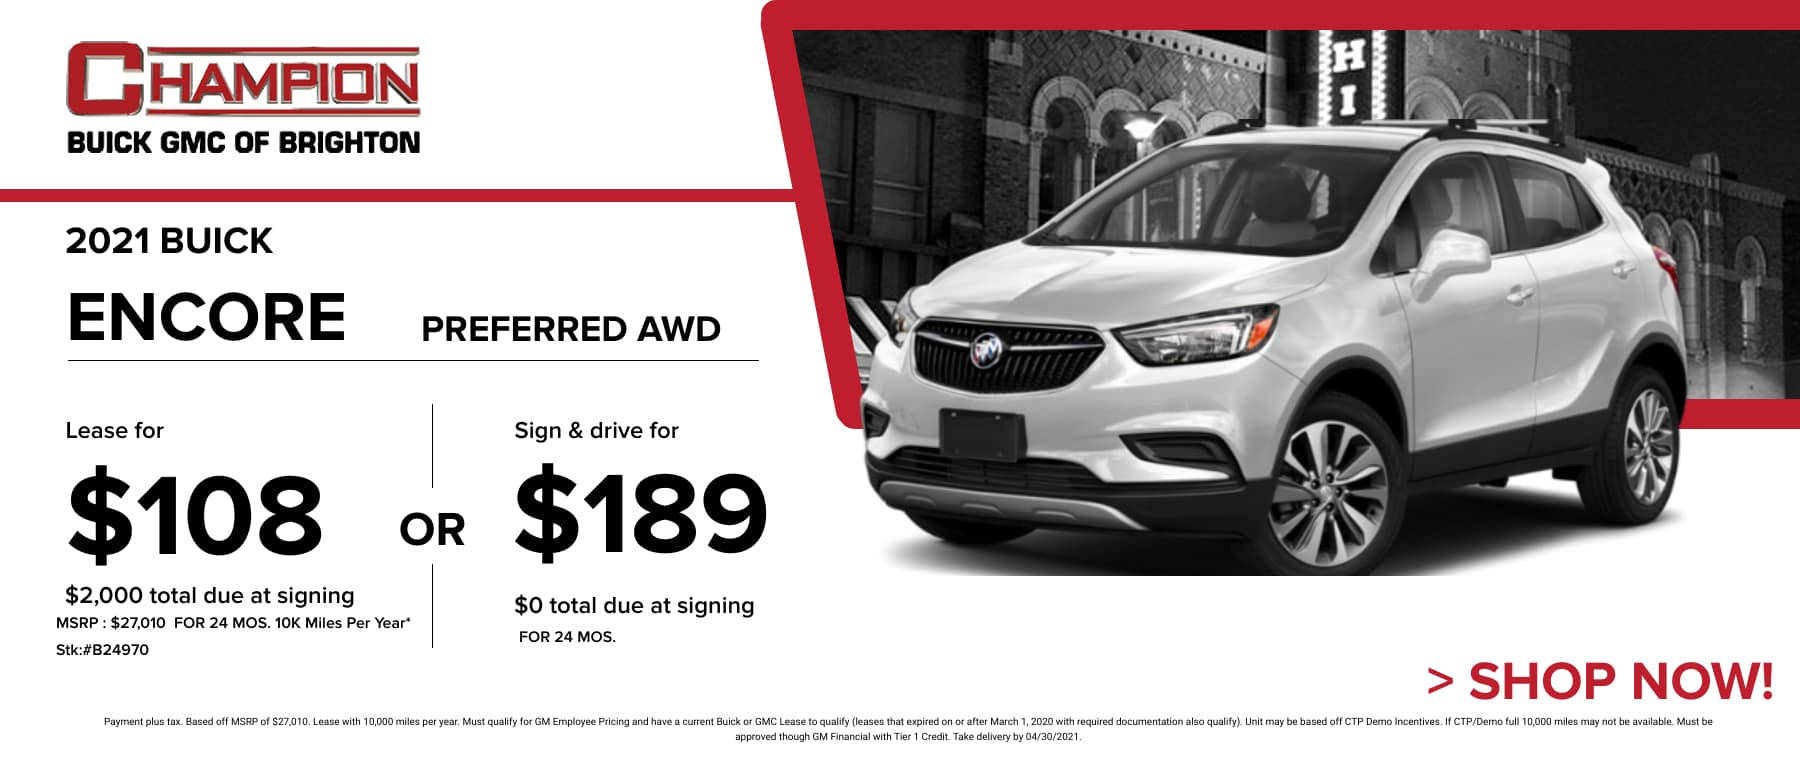 2021 Buick Encore Preferred AWD- Lease for just: $108 per month for 24 months $2,000 total due at signing. Sign & Drive for $189 per month for 24 months. *Stock #B24970. MSRP: $27,010 Payment plus tax. Based off MSRP of $27,010. Lease with 10,000 miles per year. Must qualify for GM Employee Pricing and have a current Buick or GMC Lease to qualify (leases that expired on or after March 1, 2020 with required documentation also qualify). Unit may be based off CTP Demo Incentives. If CTP/Demo full 10,000 miles may not be available. Must be approved though GM Financial with Tier 1 Credit. Take delivery by 04/30/2021.